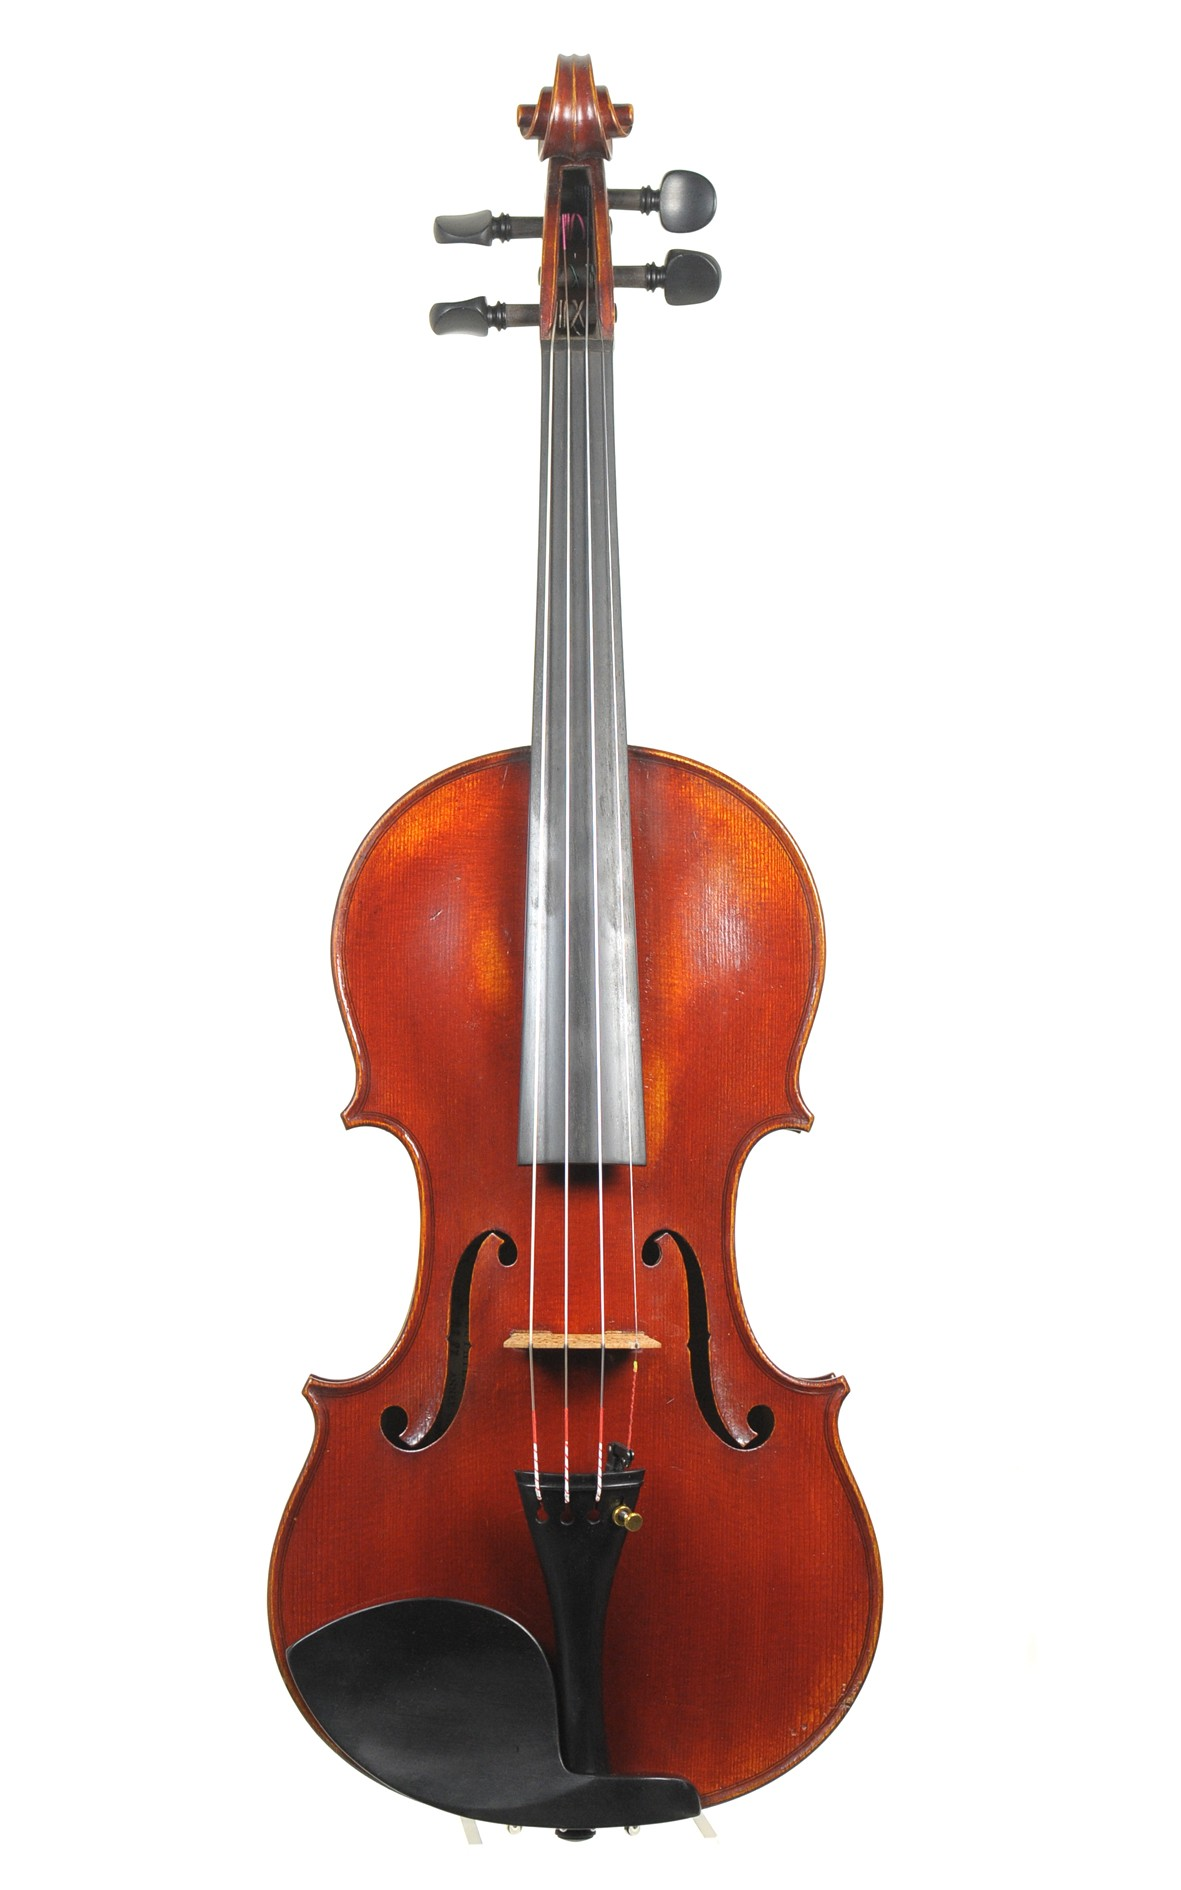 Fine French Paris master violin, Georges Defat, No. 87, 1942 - top view